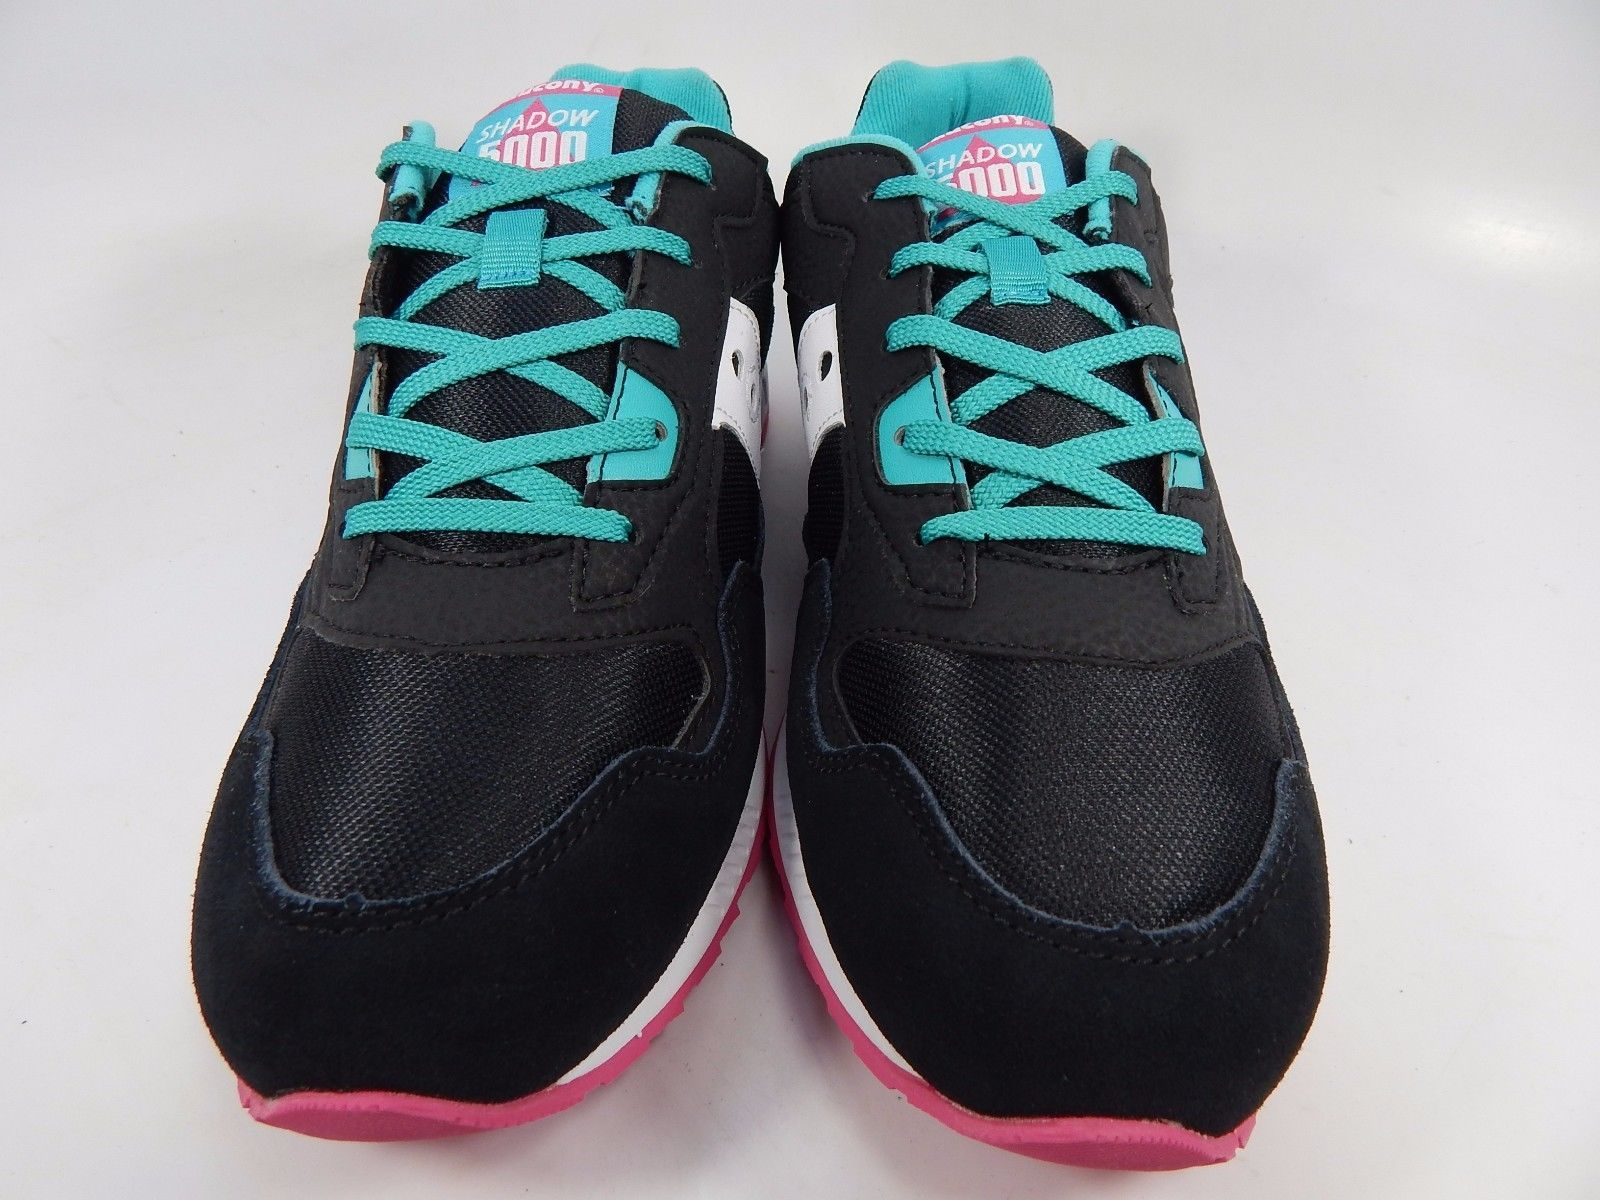 Saucony Original Shadow 5000 Women's Girl's Youth Shoes Sz 7 Y (M) EU 39.5 Black